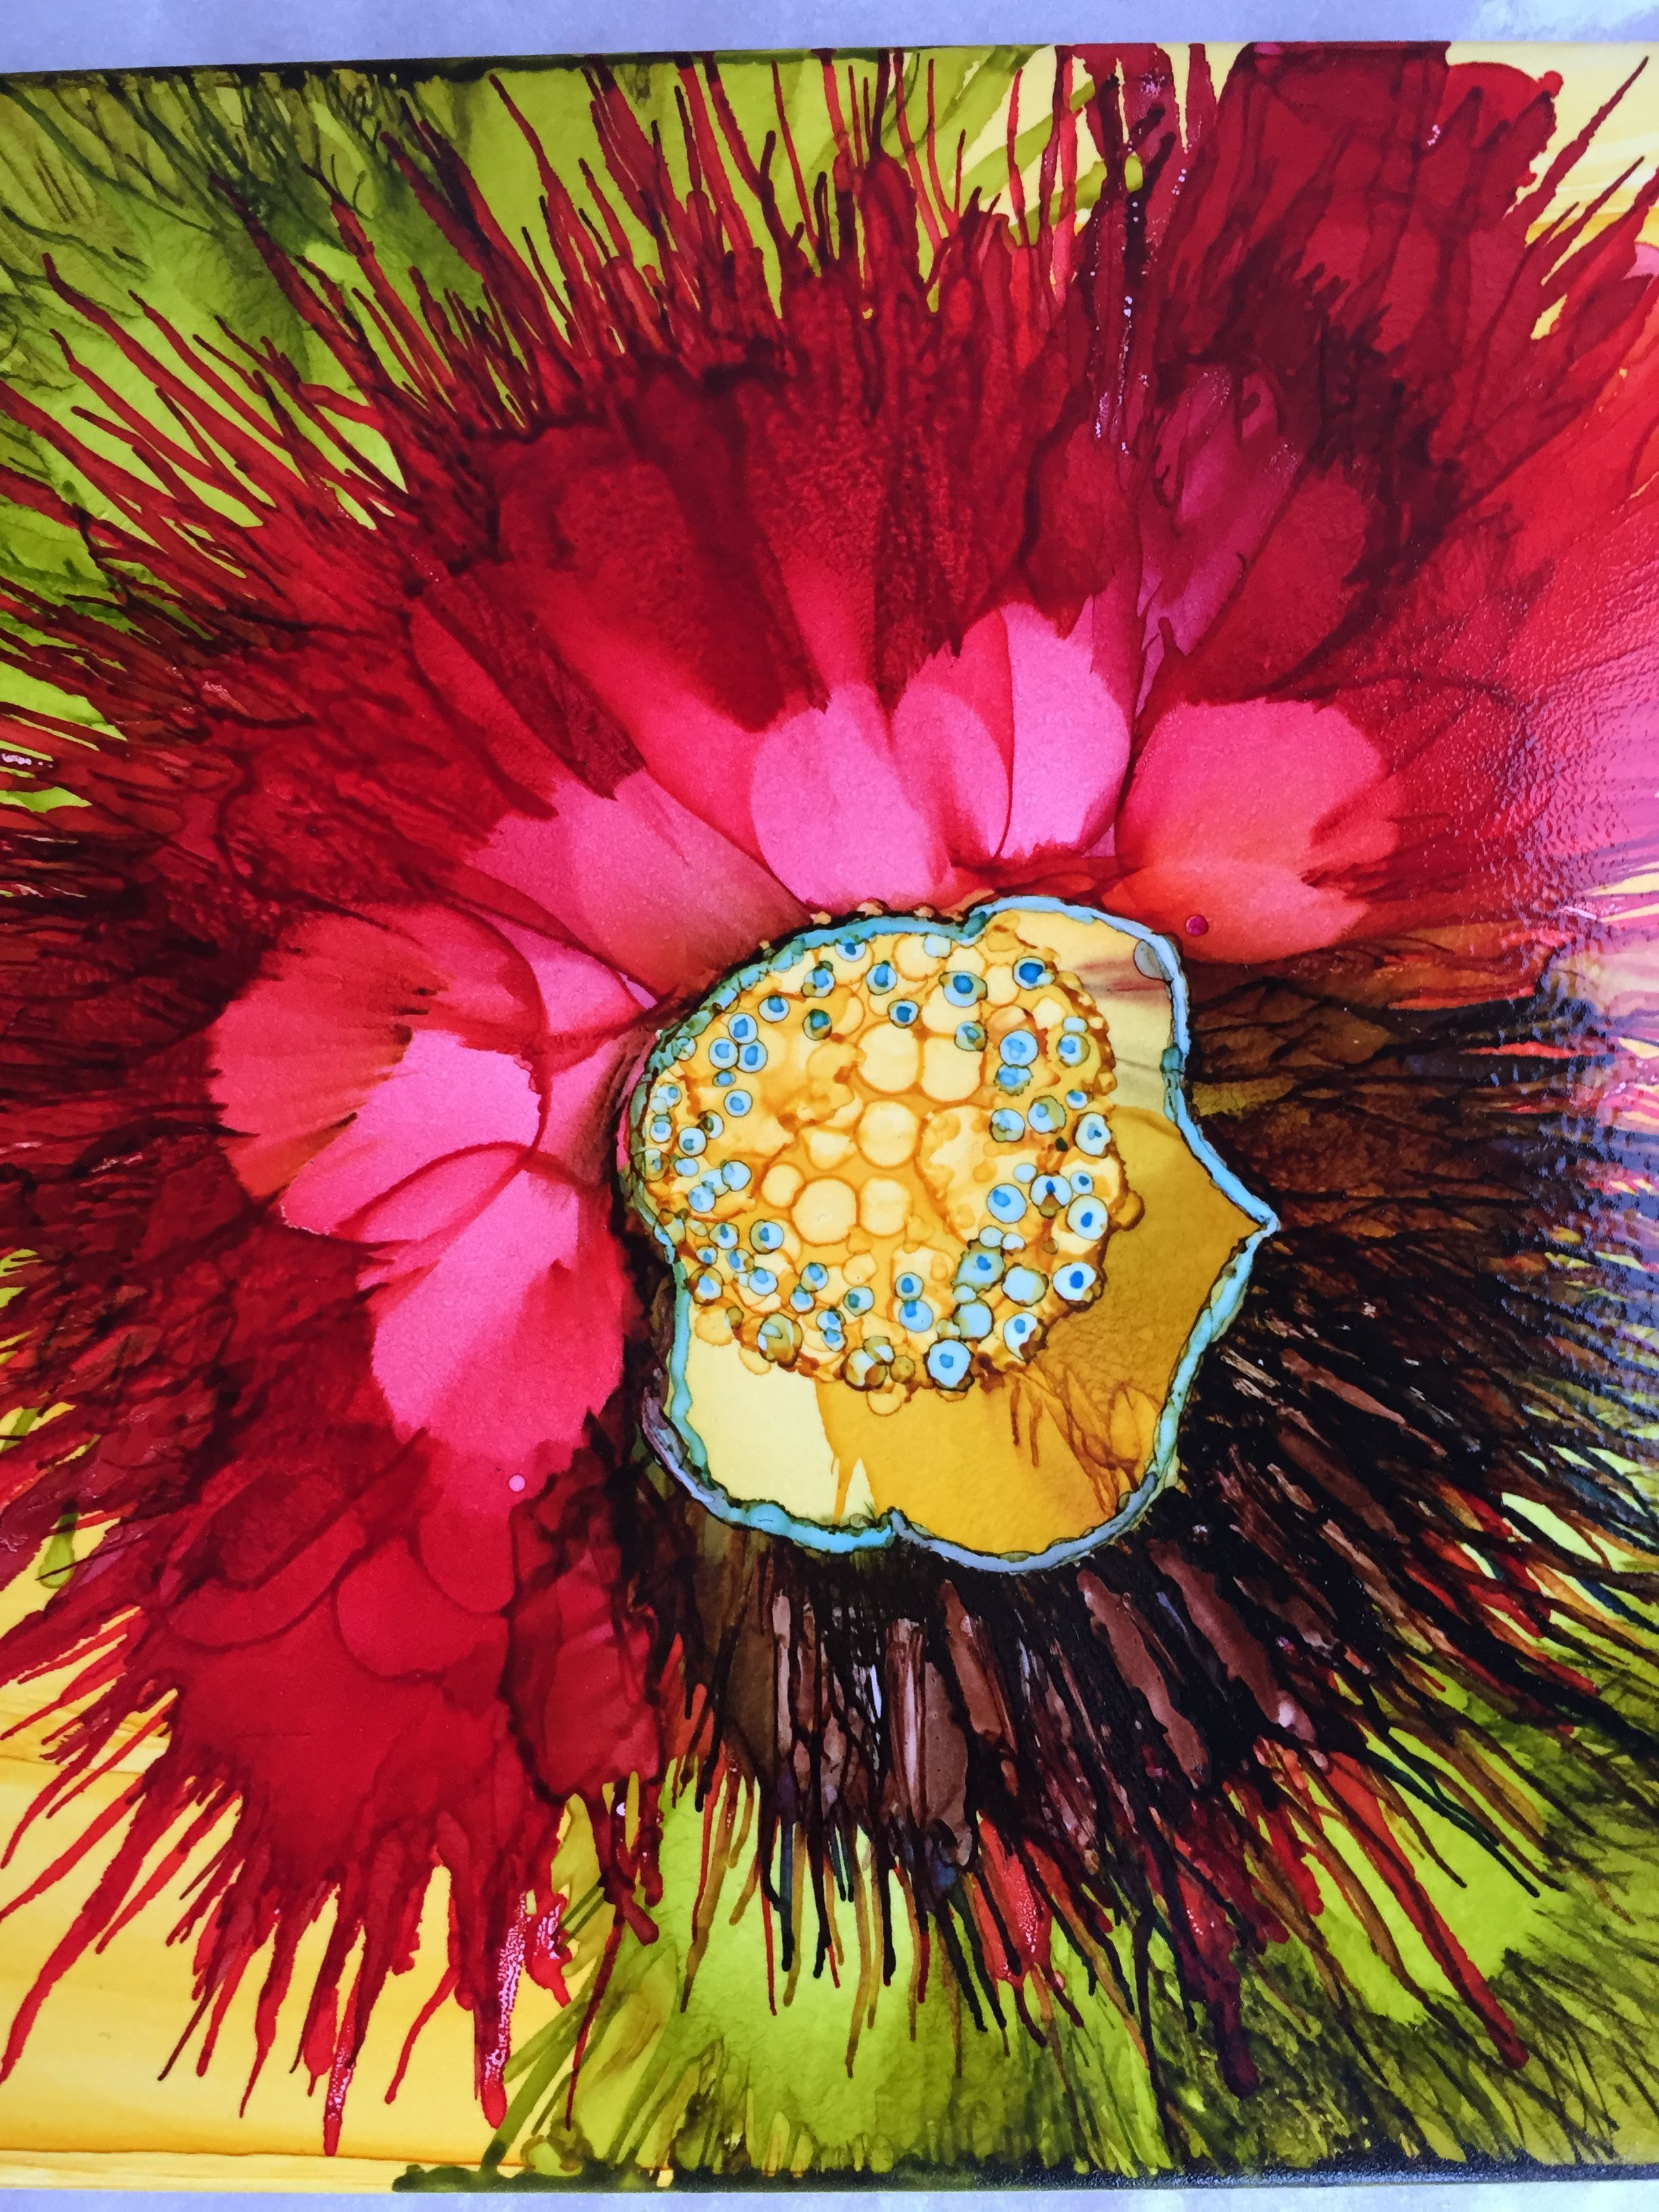 Flowerscaping on tile using Alcohol Inks. My creativity ...